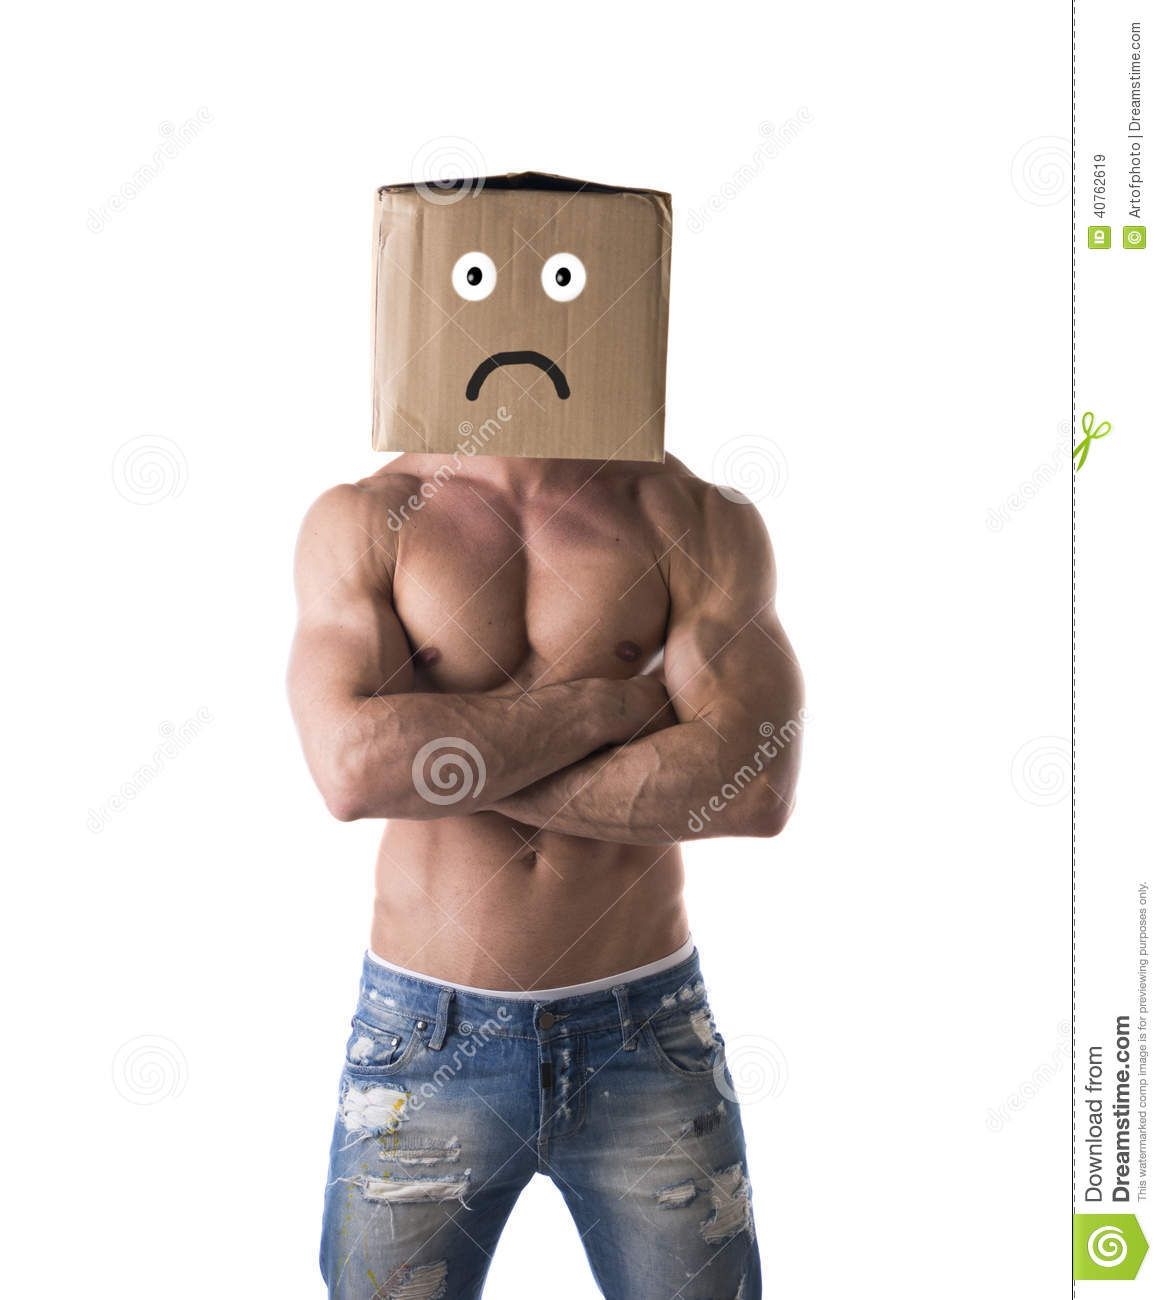 ... , unhappy cardboard box on his head, isolated on white, arms crossed